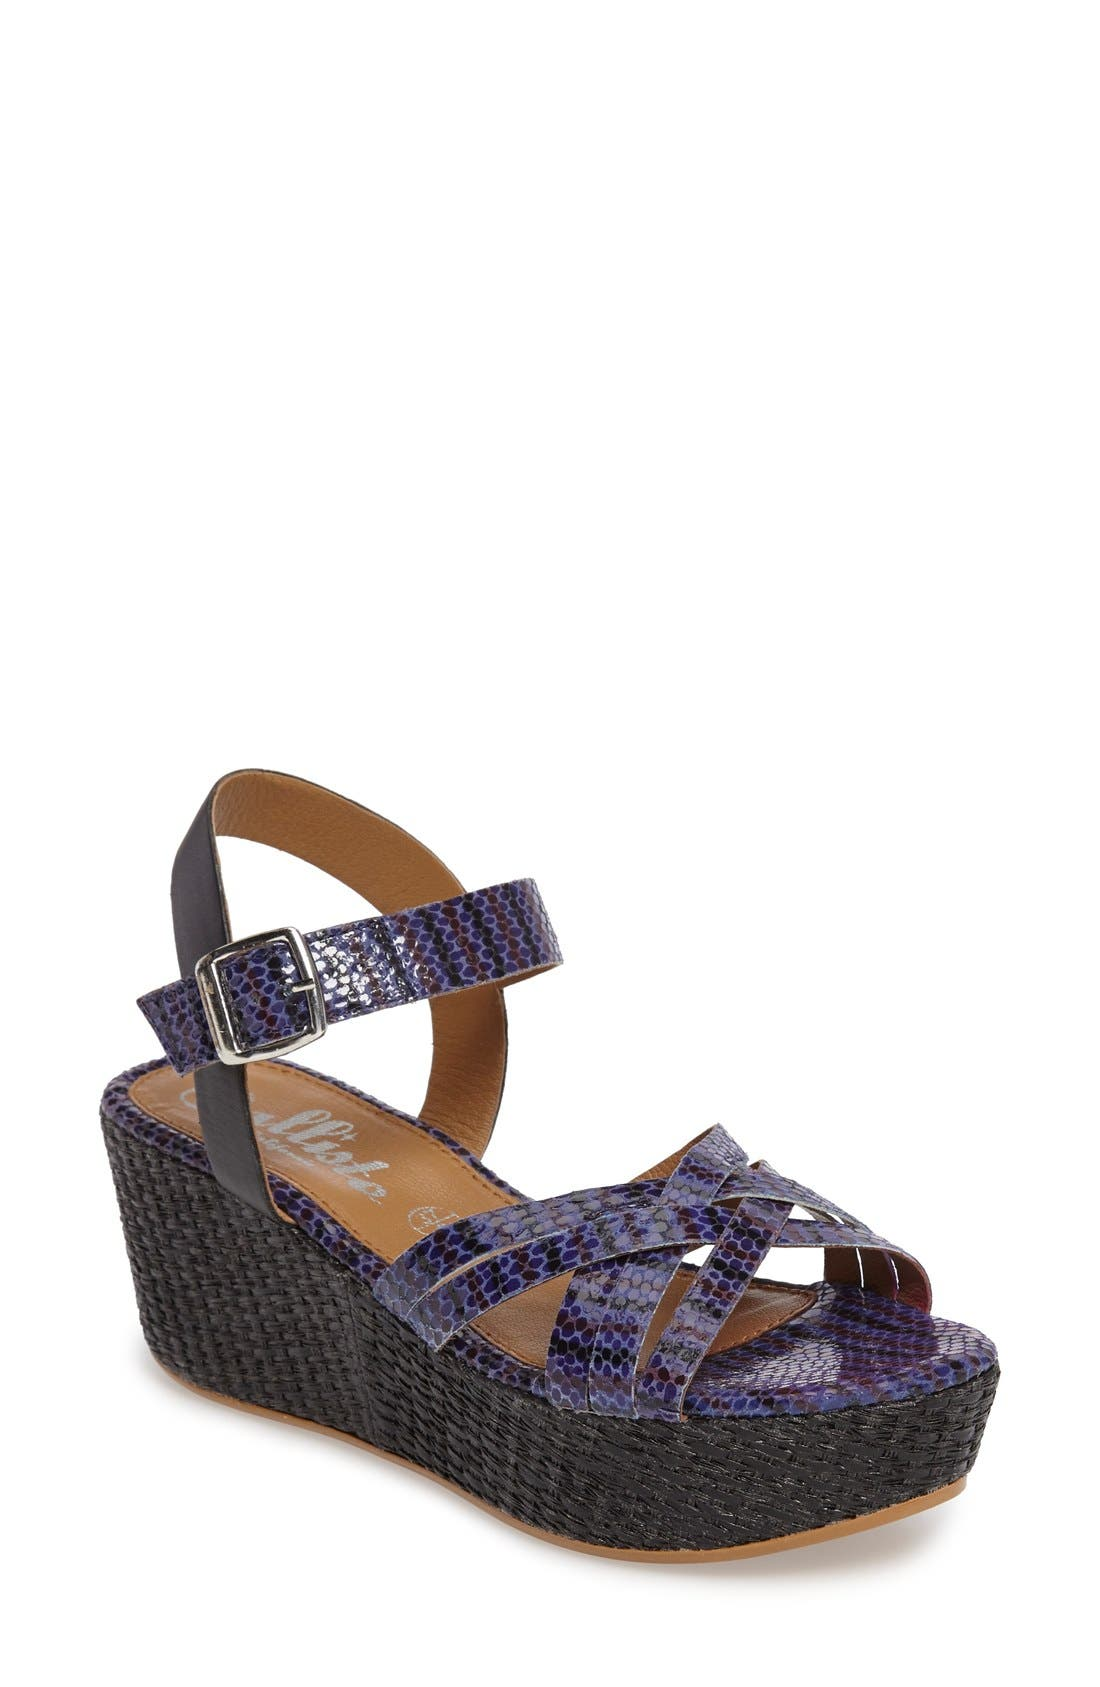 Valencia Platform Wedge Sandal,                         Main,                         color, Blue Faux Leather